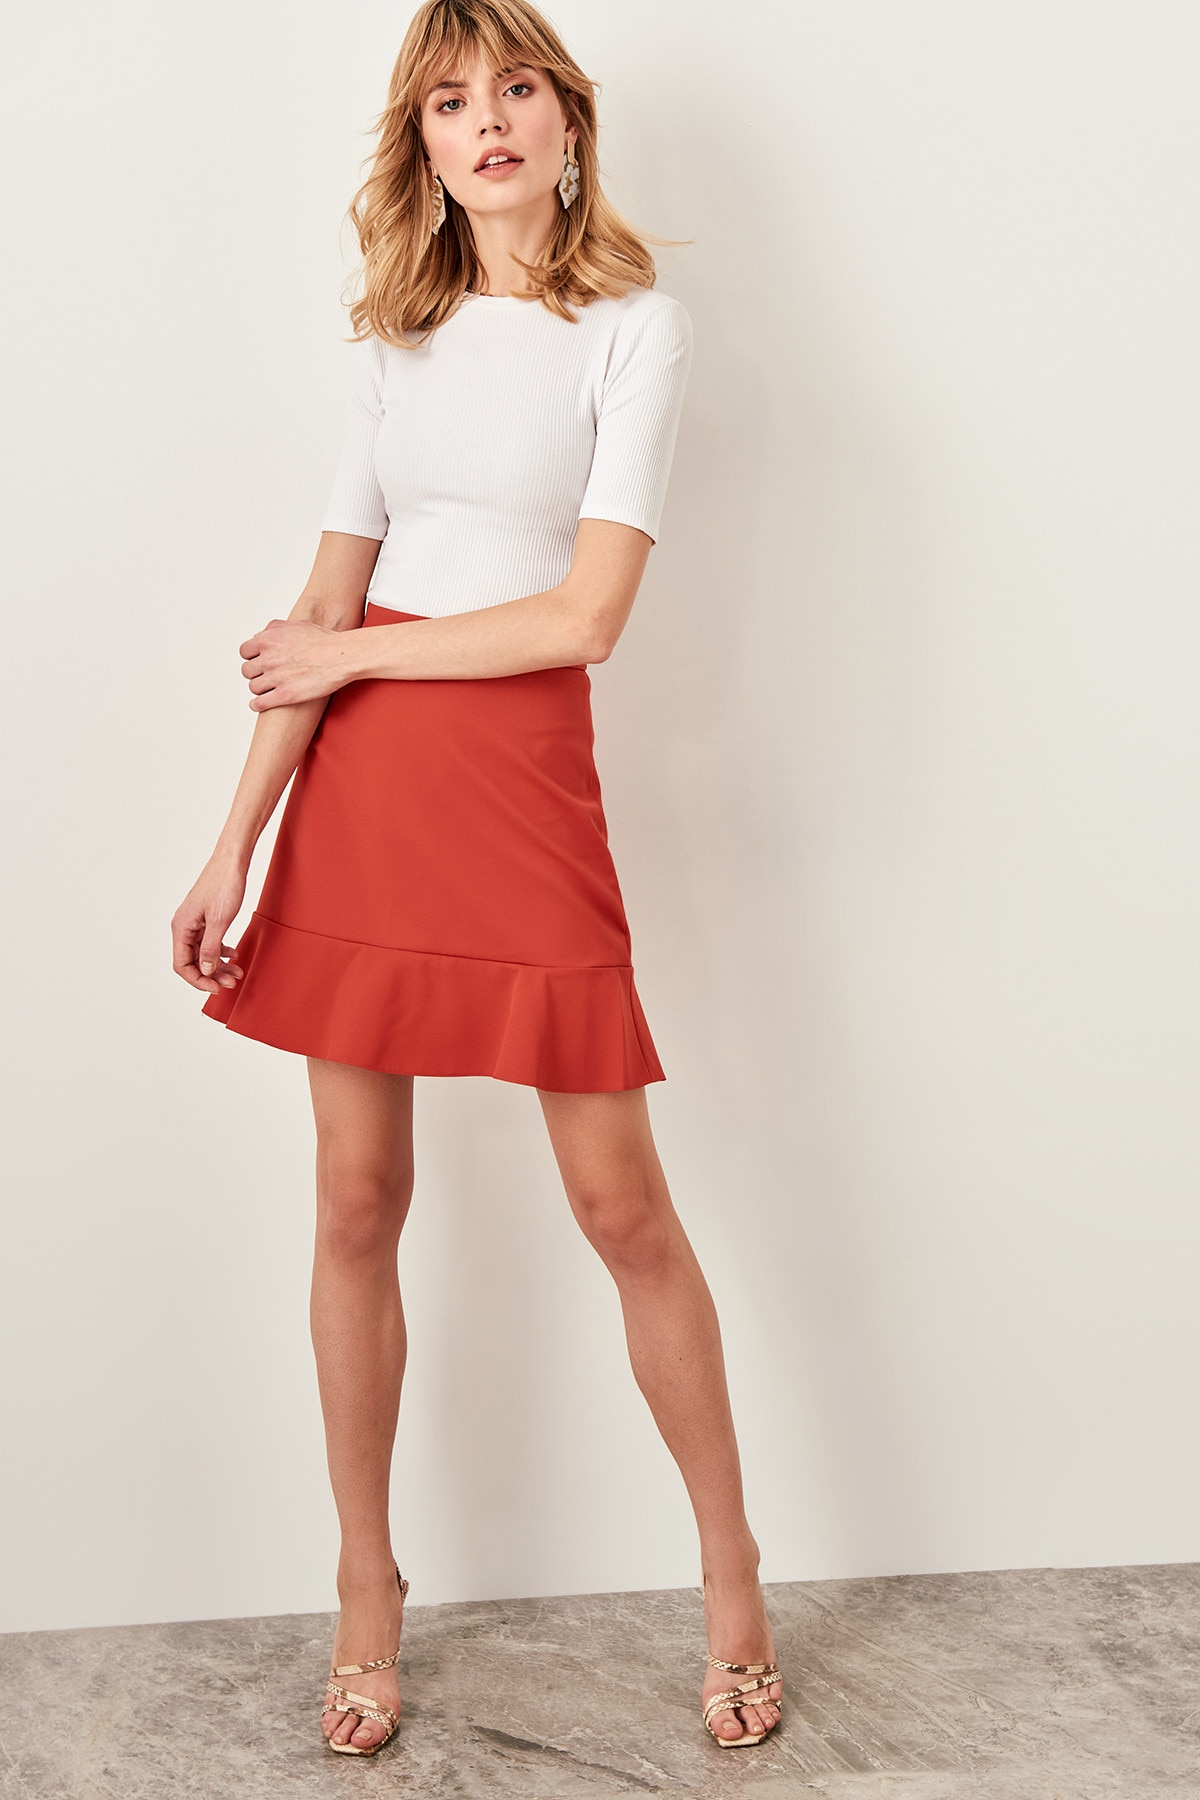 Trendyol Cinnamon Hand-Wheel Skirt